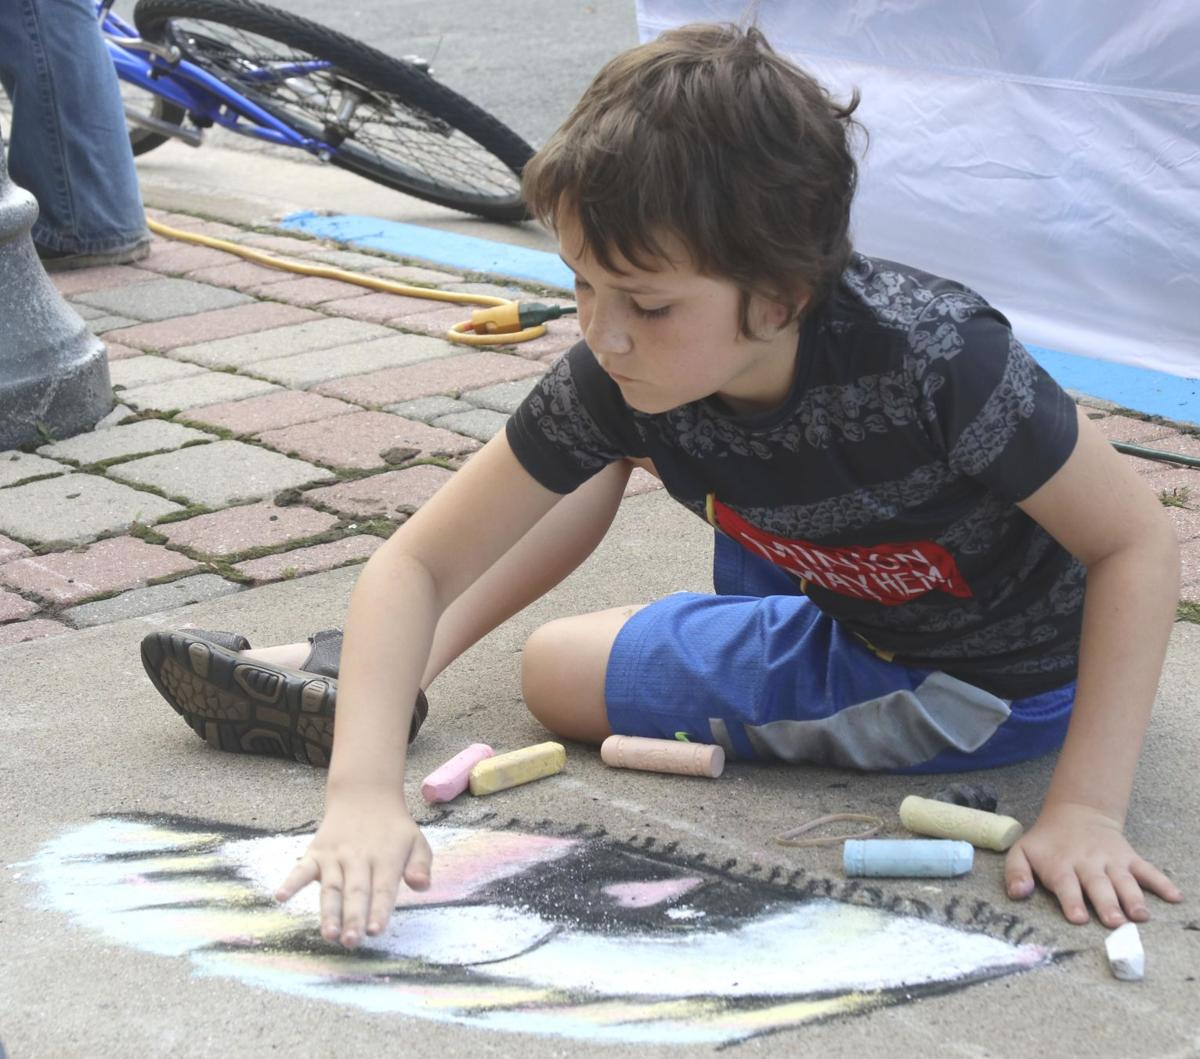 Cambridge Art Fair brings color and music to downtown